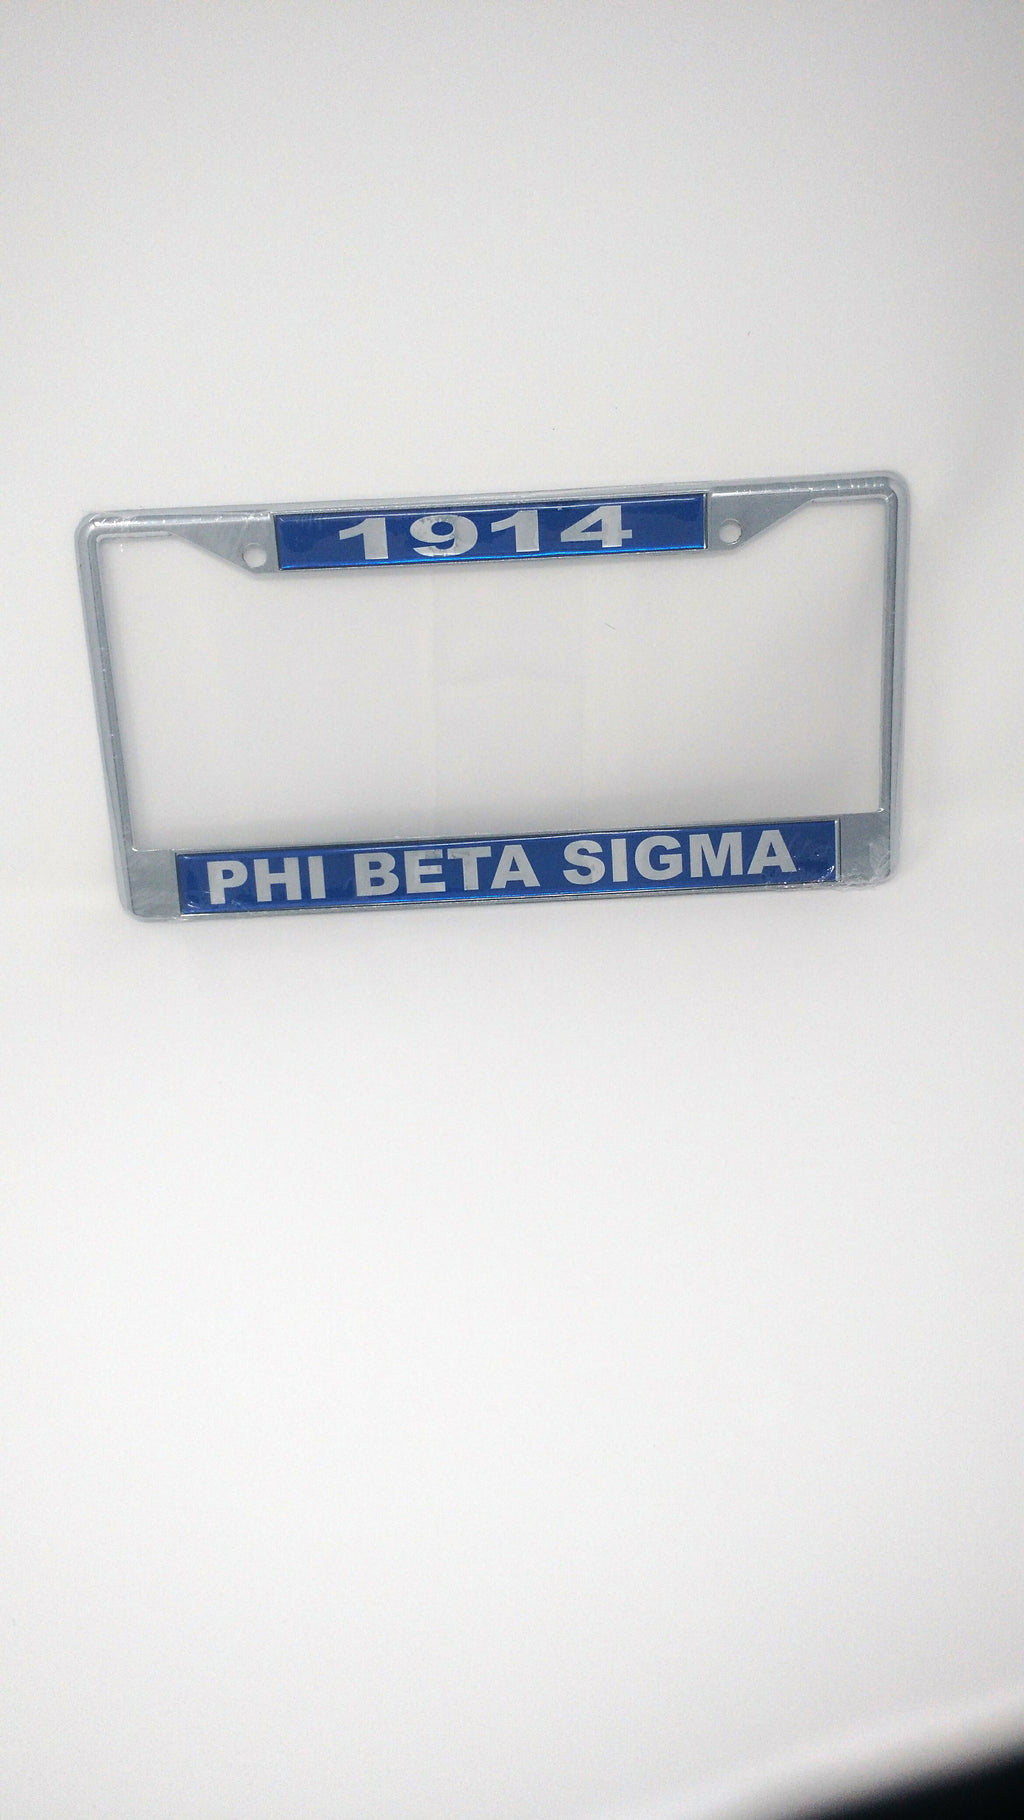 Phi Beta Sigma 1914 License Plate Frame